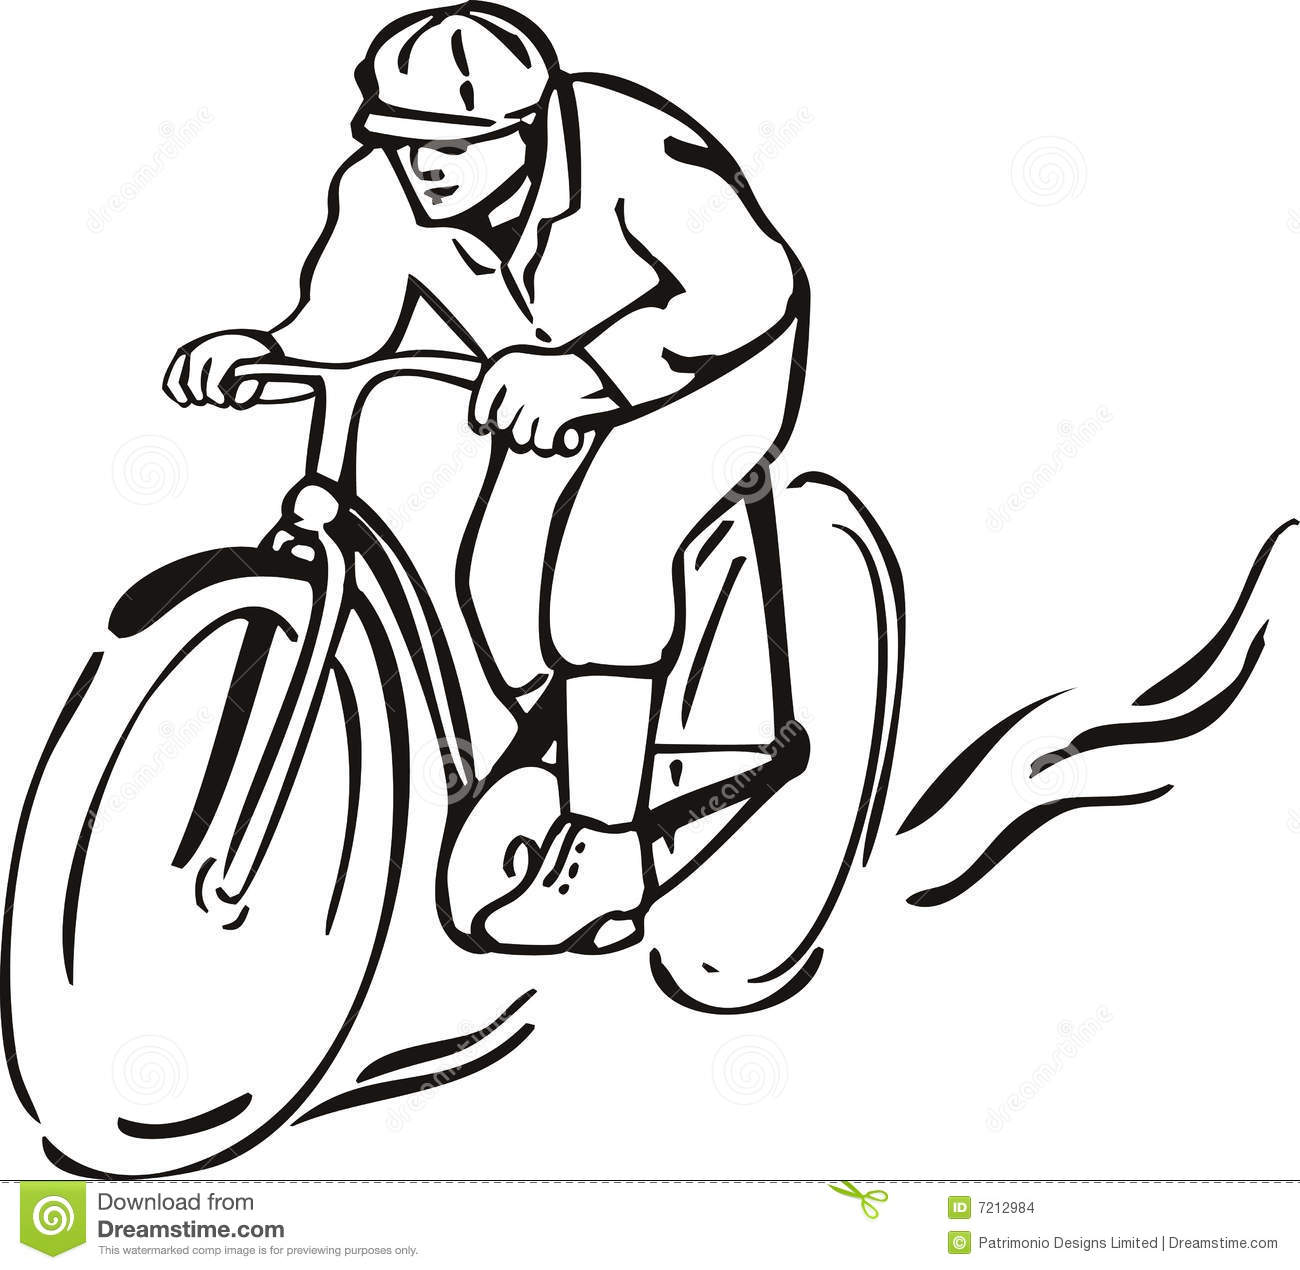 Ride clipart black and white White Bicycle Riding clipart Stock